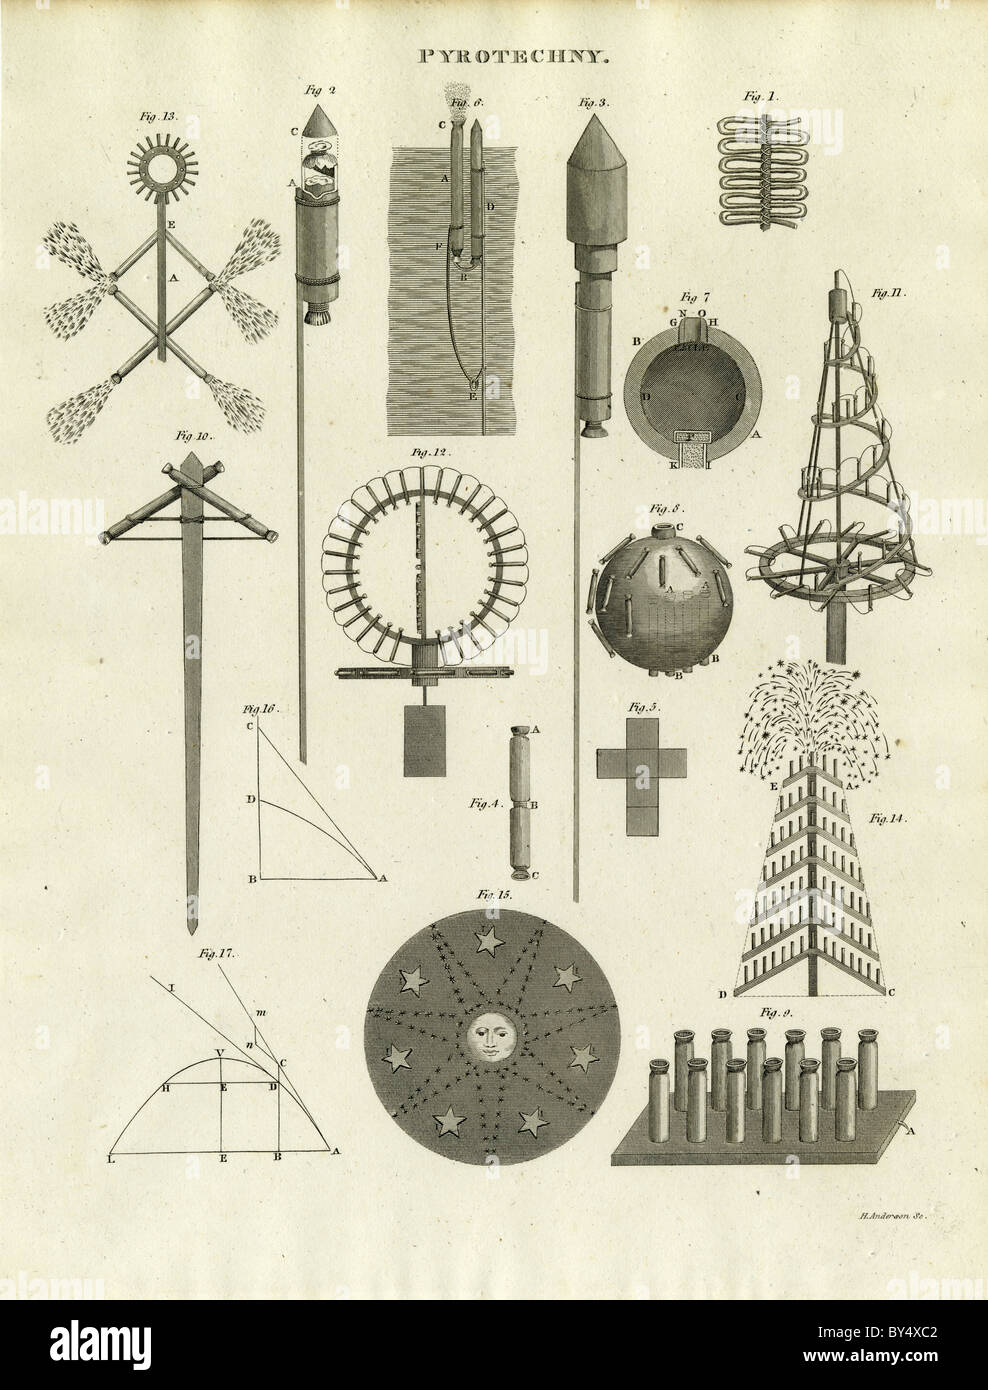 1820 engraving, 'Pyrotechny,' showing various period fireworks assemblies. - Stock Image